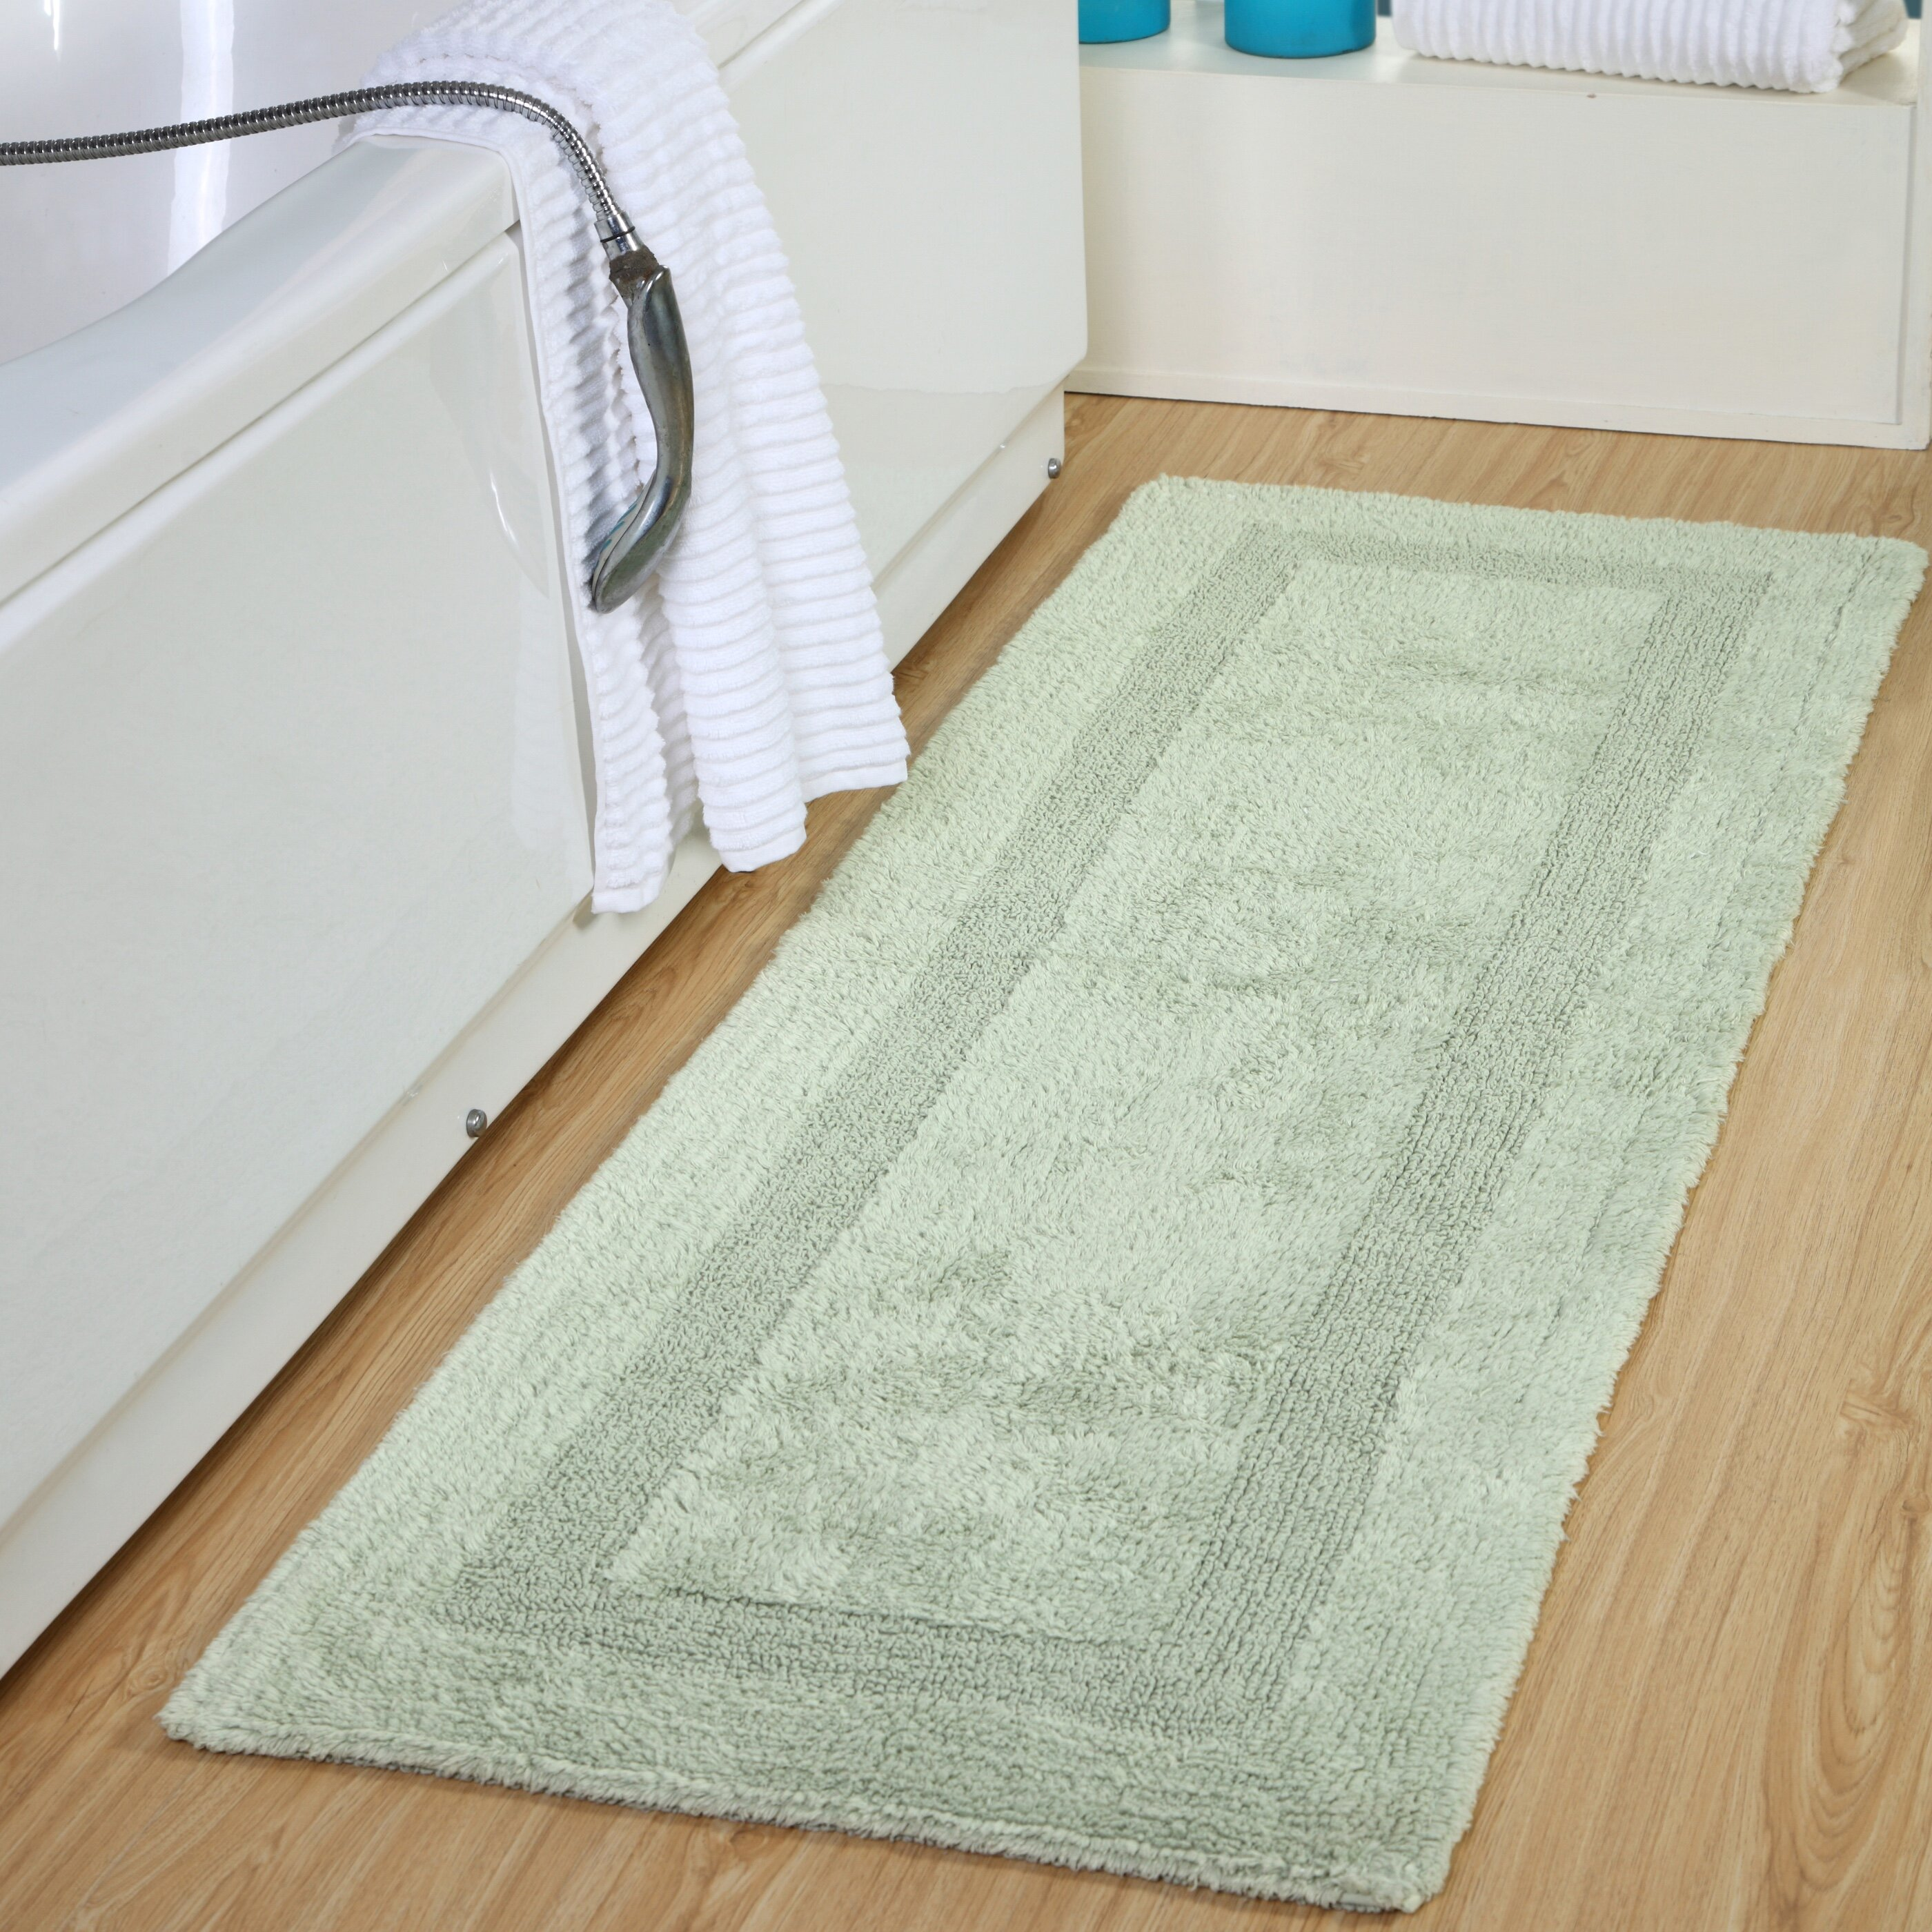 Green Bath Rugs Mats Free Shipping Over 35 Wayfair